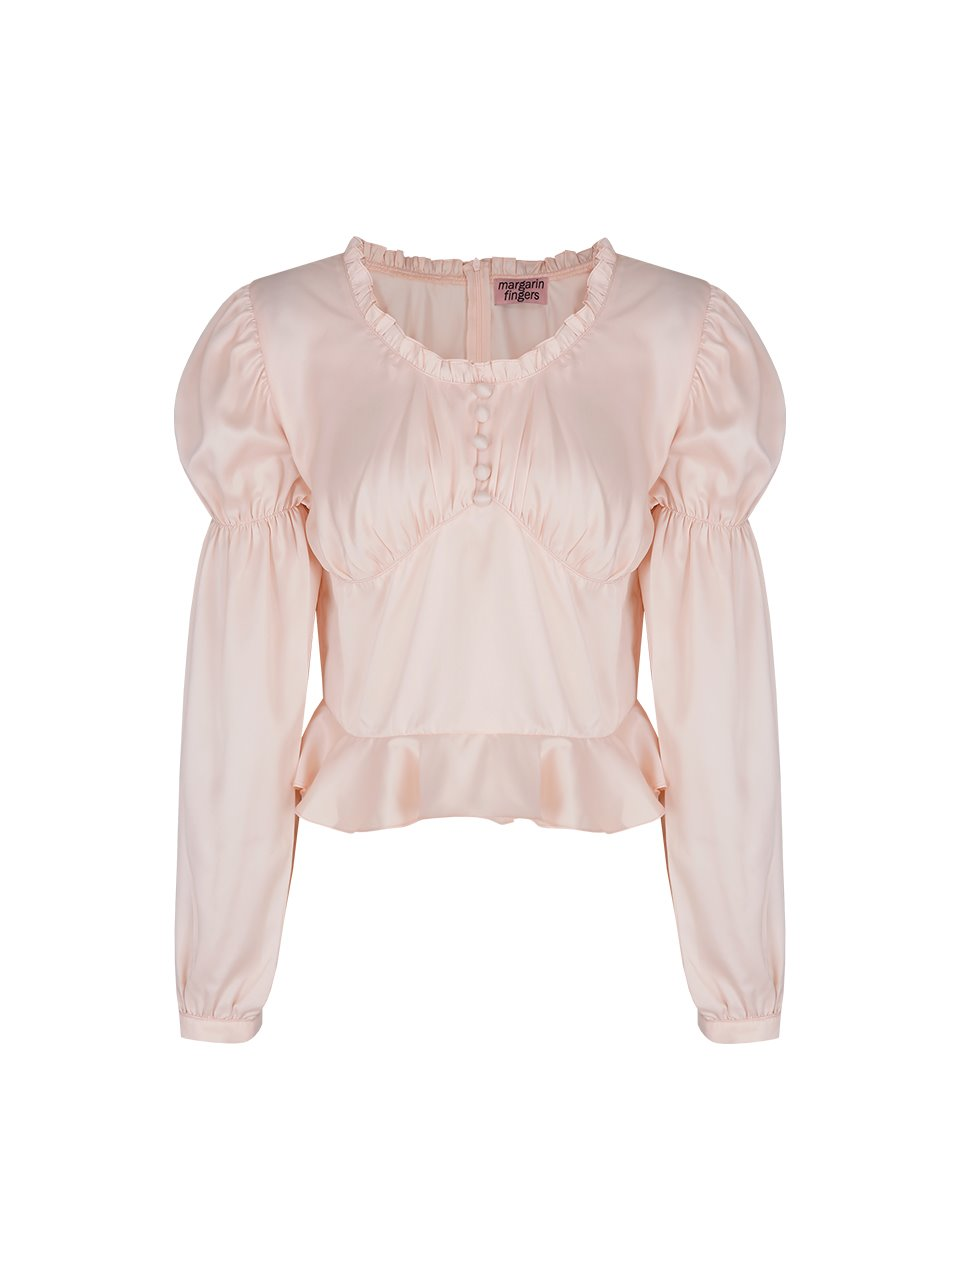 satin romantic blouse